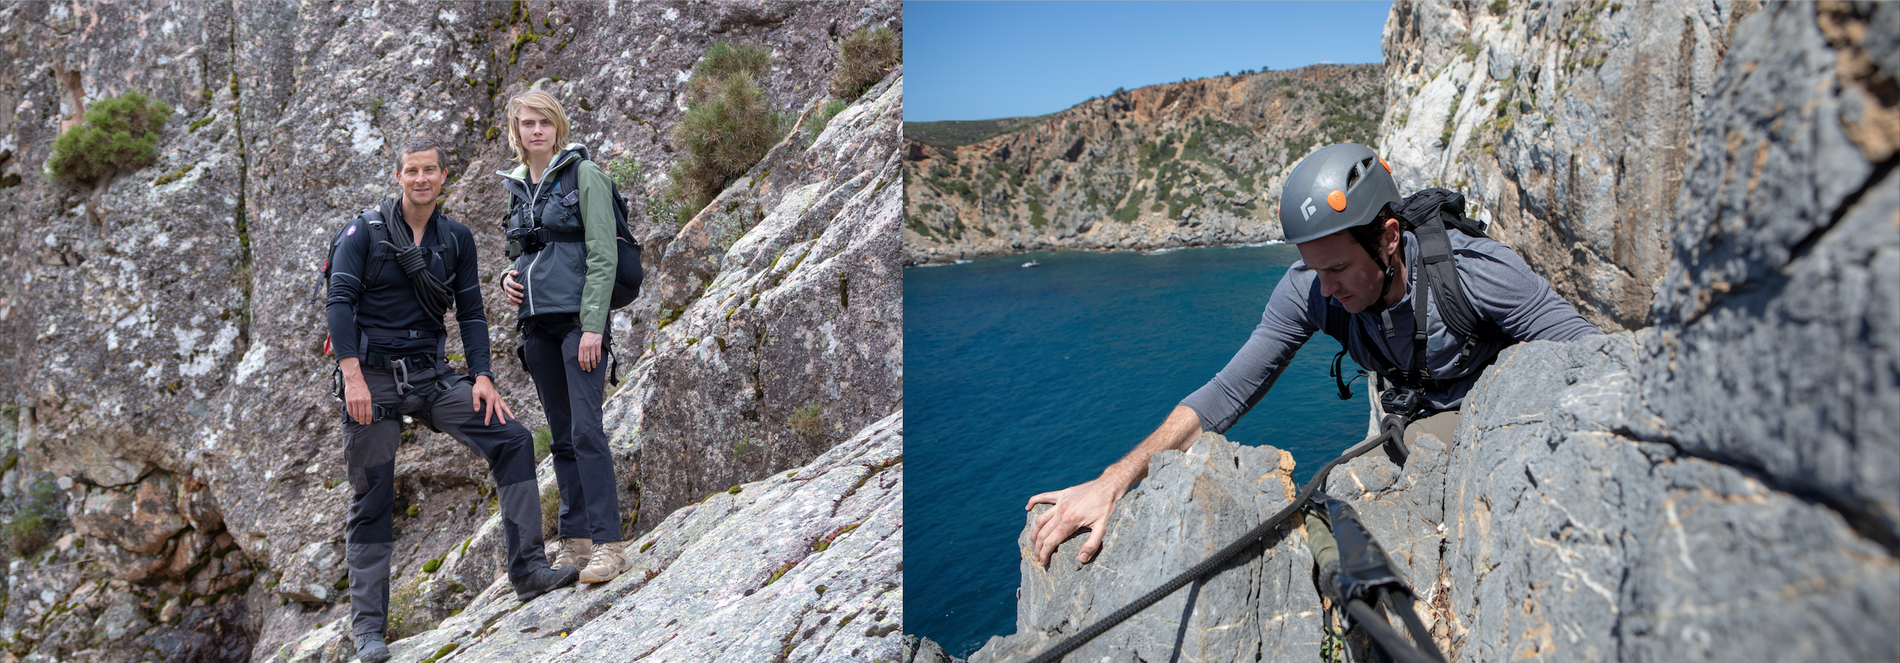 British model and actor Cara Delevigne with Bear Grylls in Sardinia's interior (left) while actor Armie ...